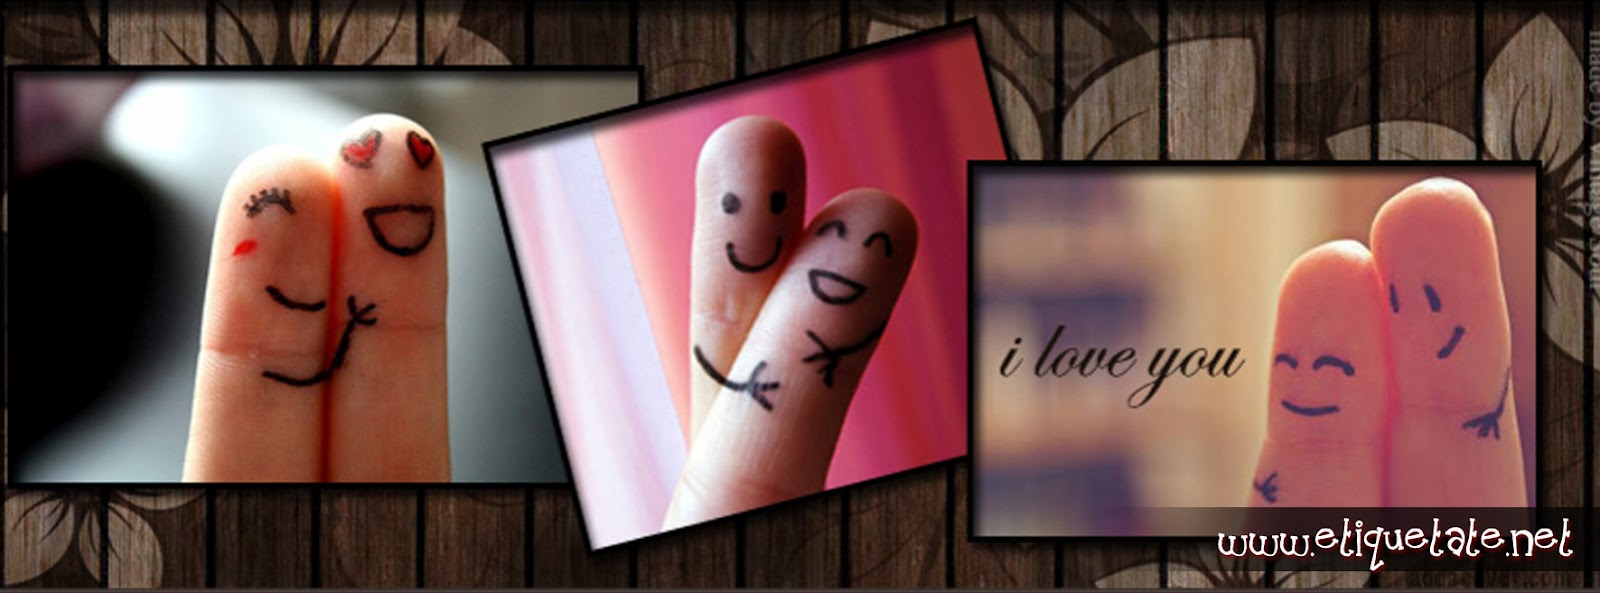 i love you images for facebook cover - photo #24